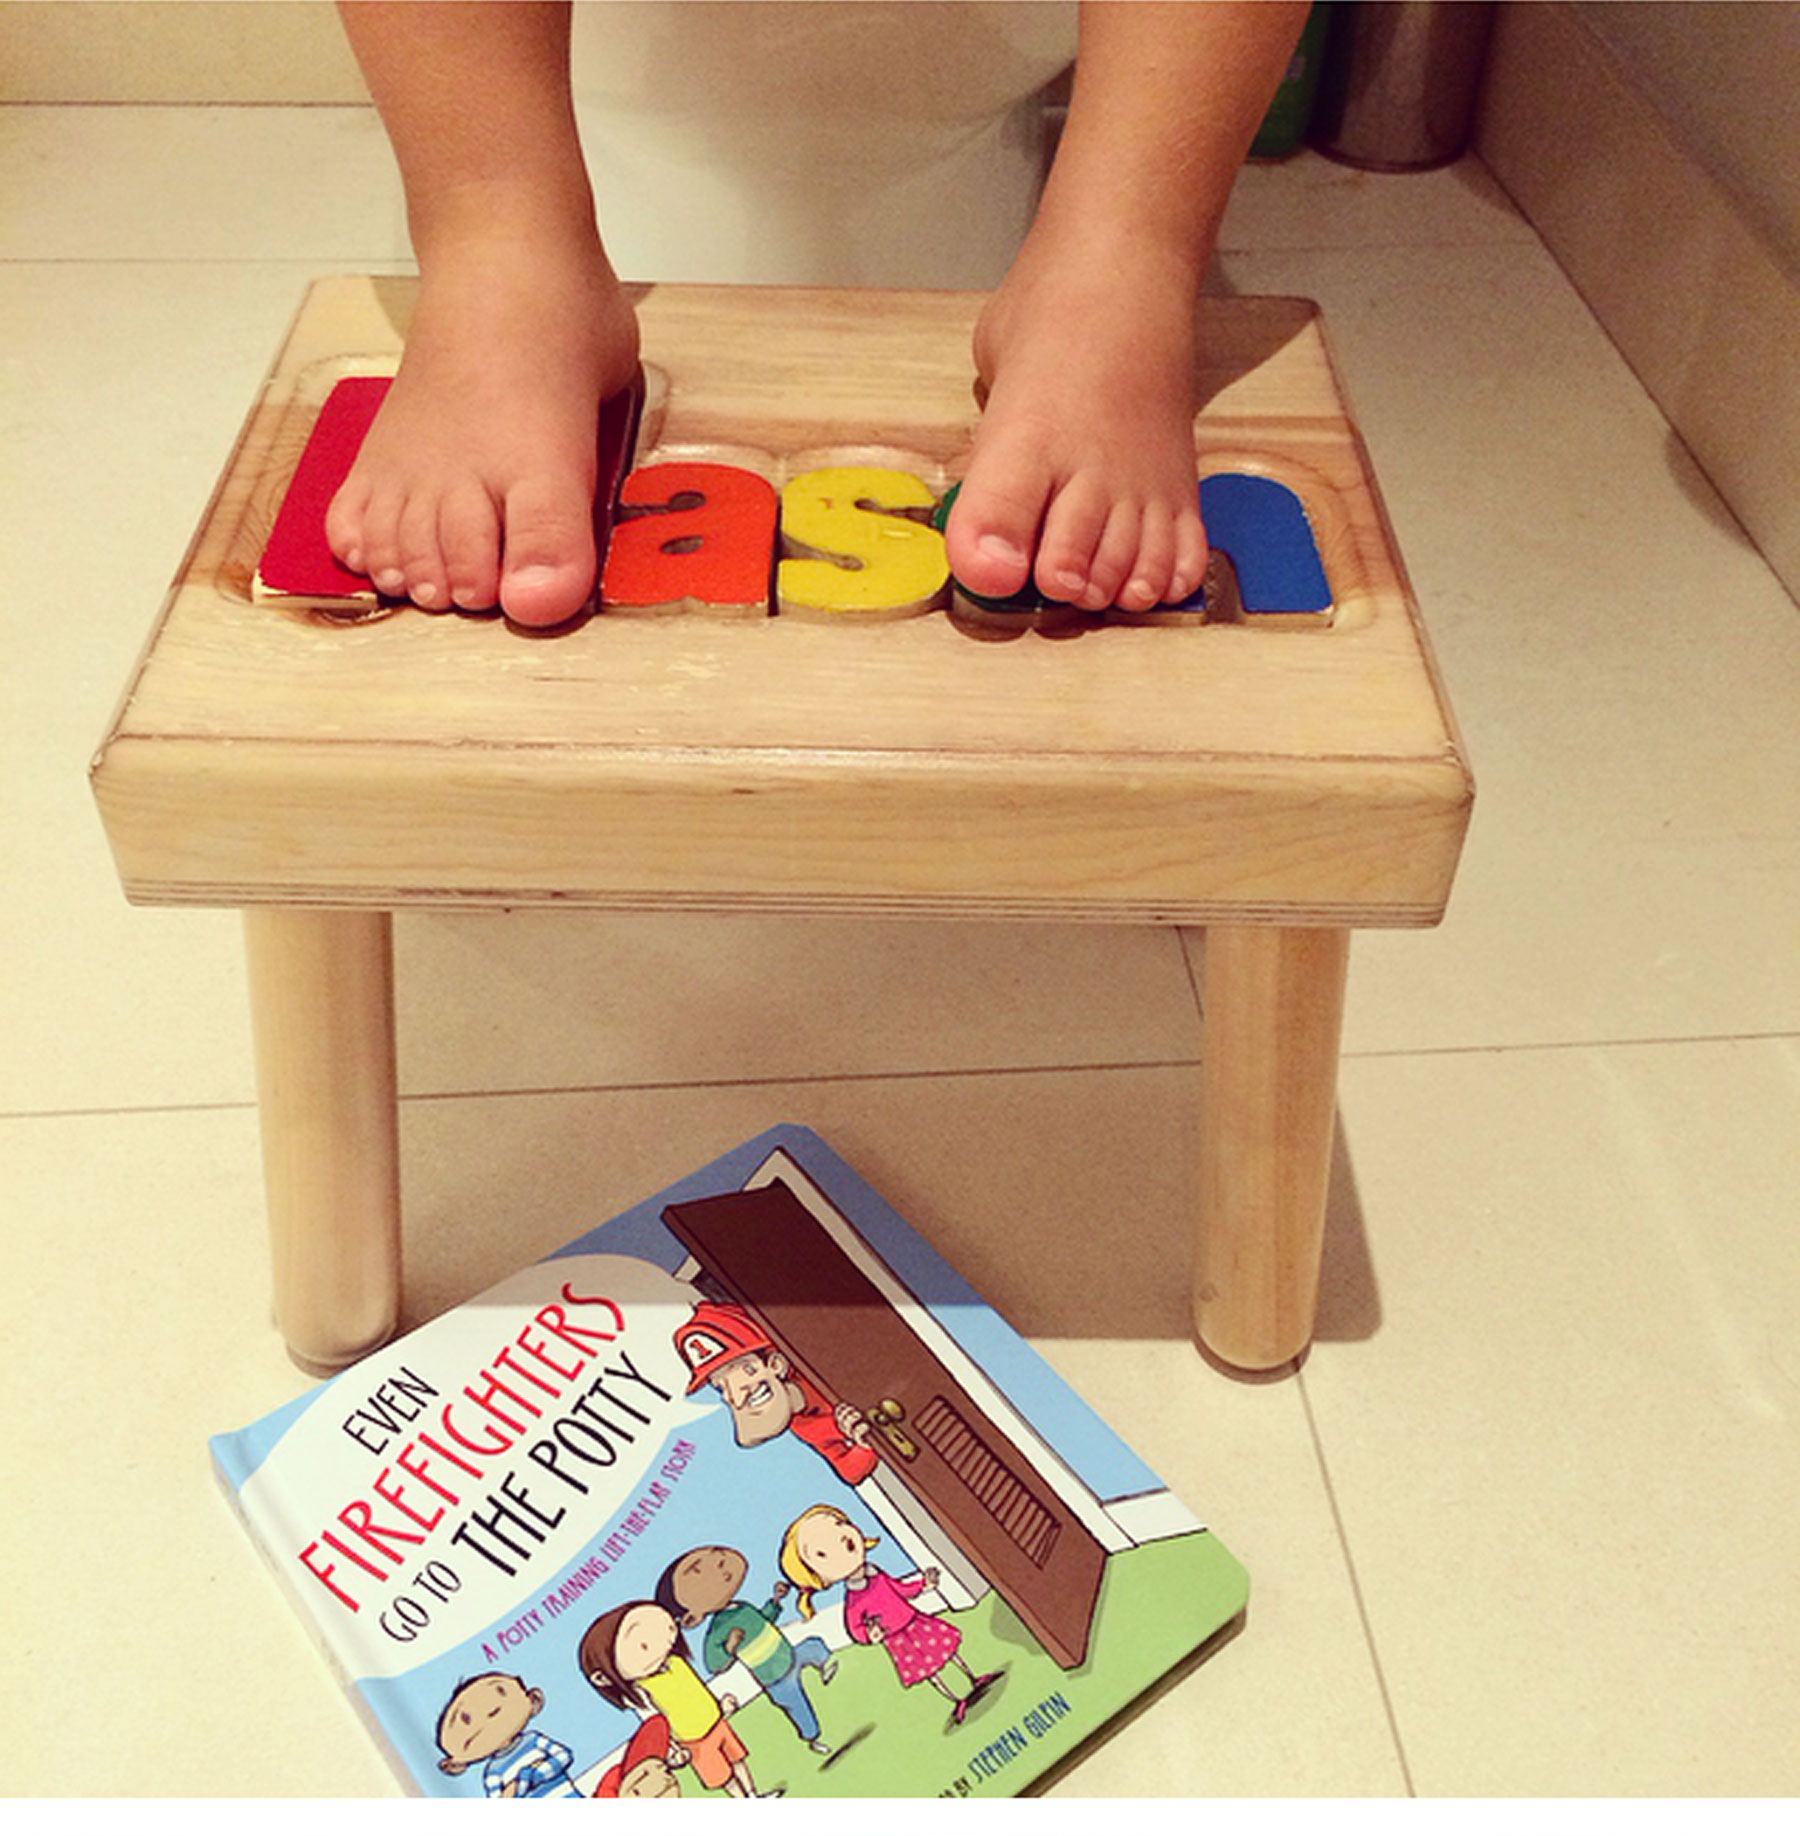 A Day in the Life of Ceci Johnson - 6:45 AM Here comes the not-so-glamourous part of the day. Having a toddler means morning potty training! I'm in full mom mode reading him the book 'Even Firefighters Go to the Potty' and coaching him along.